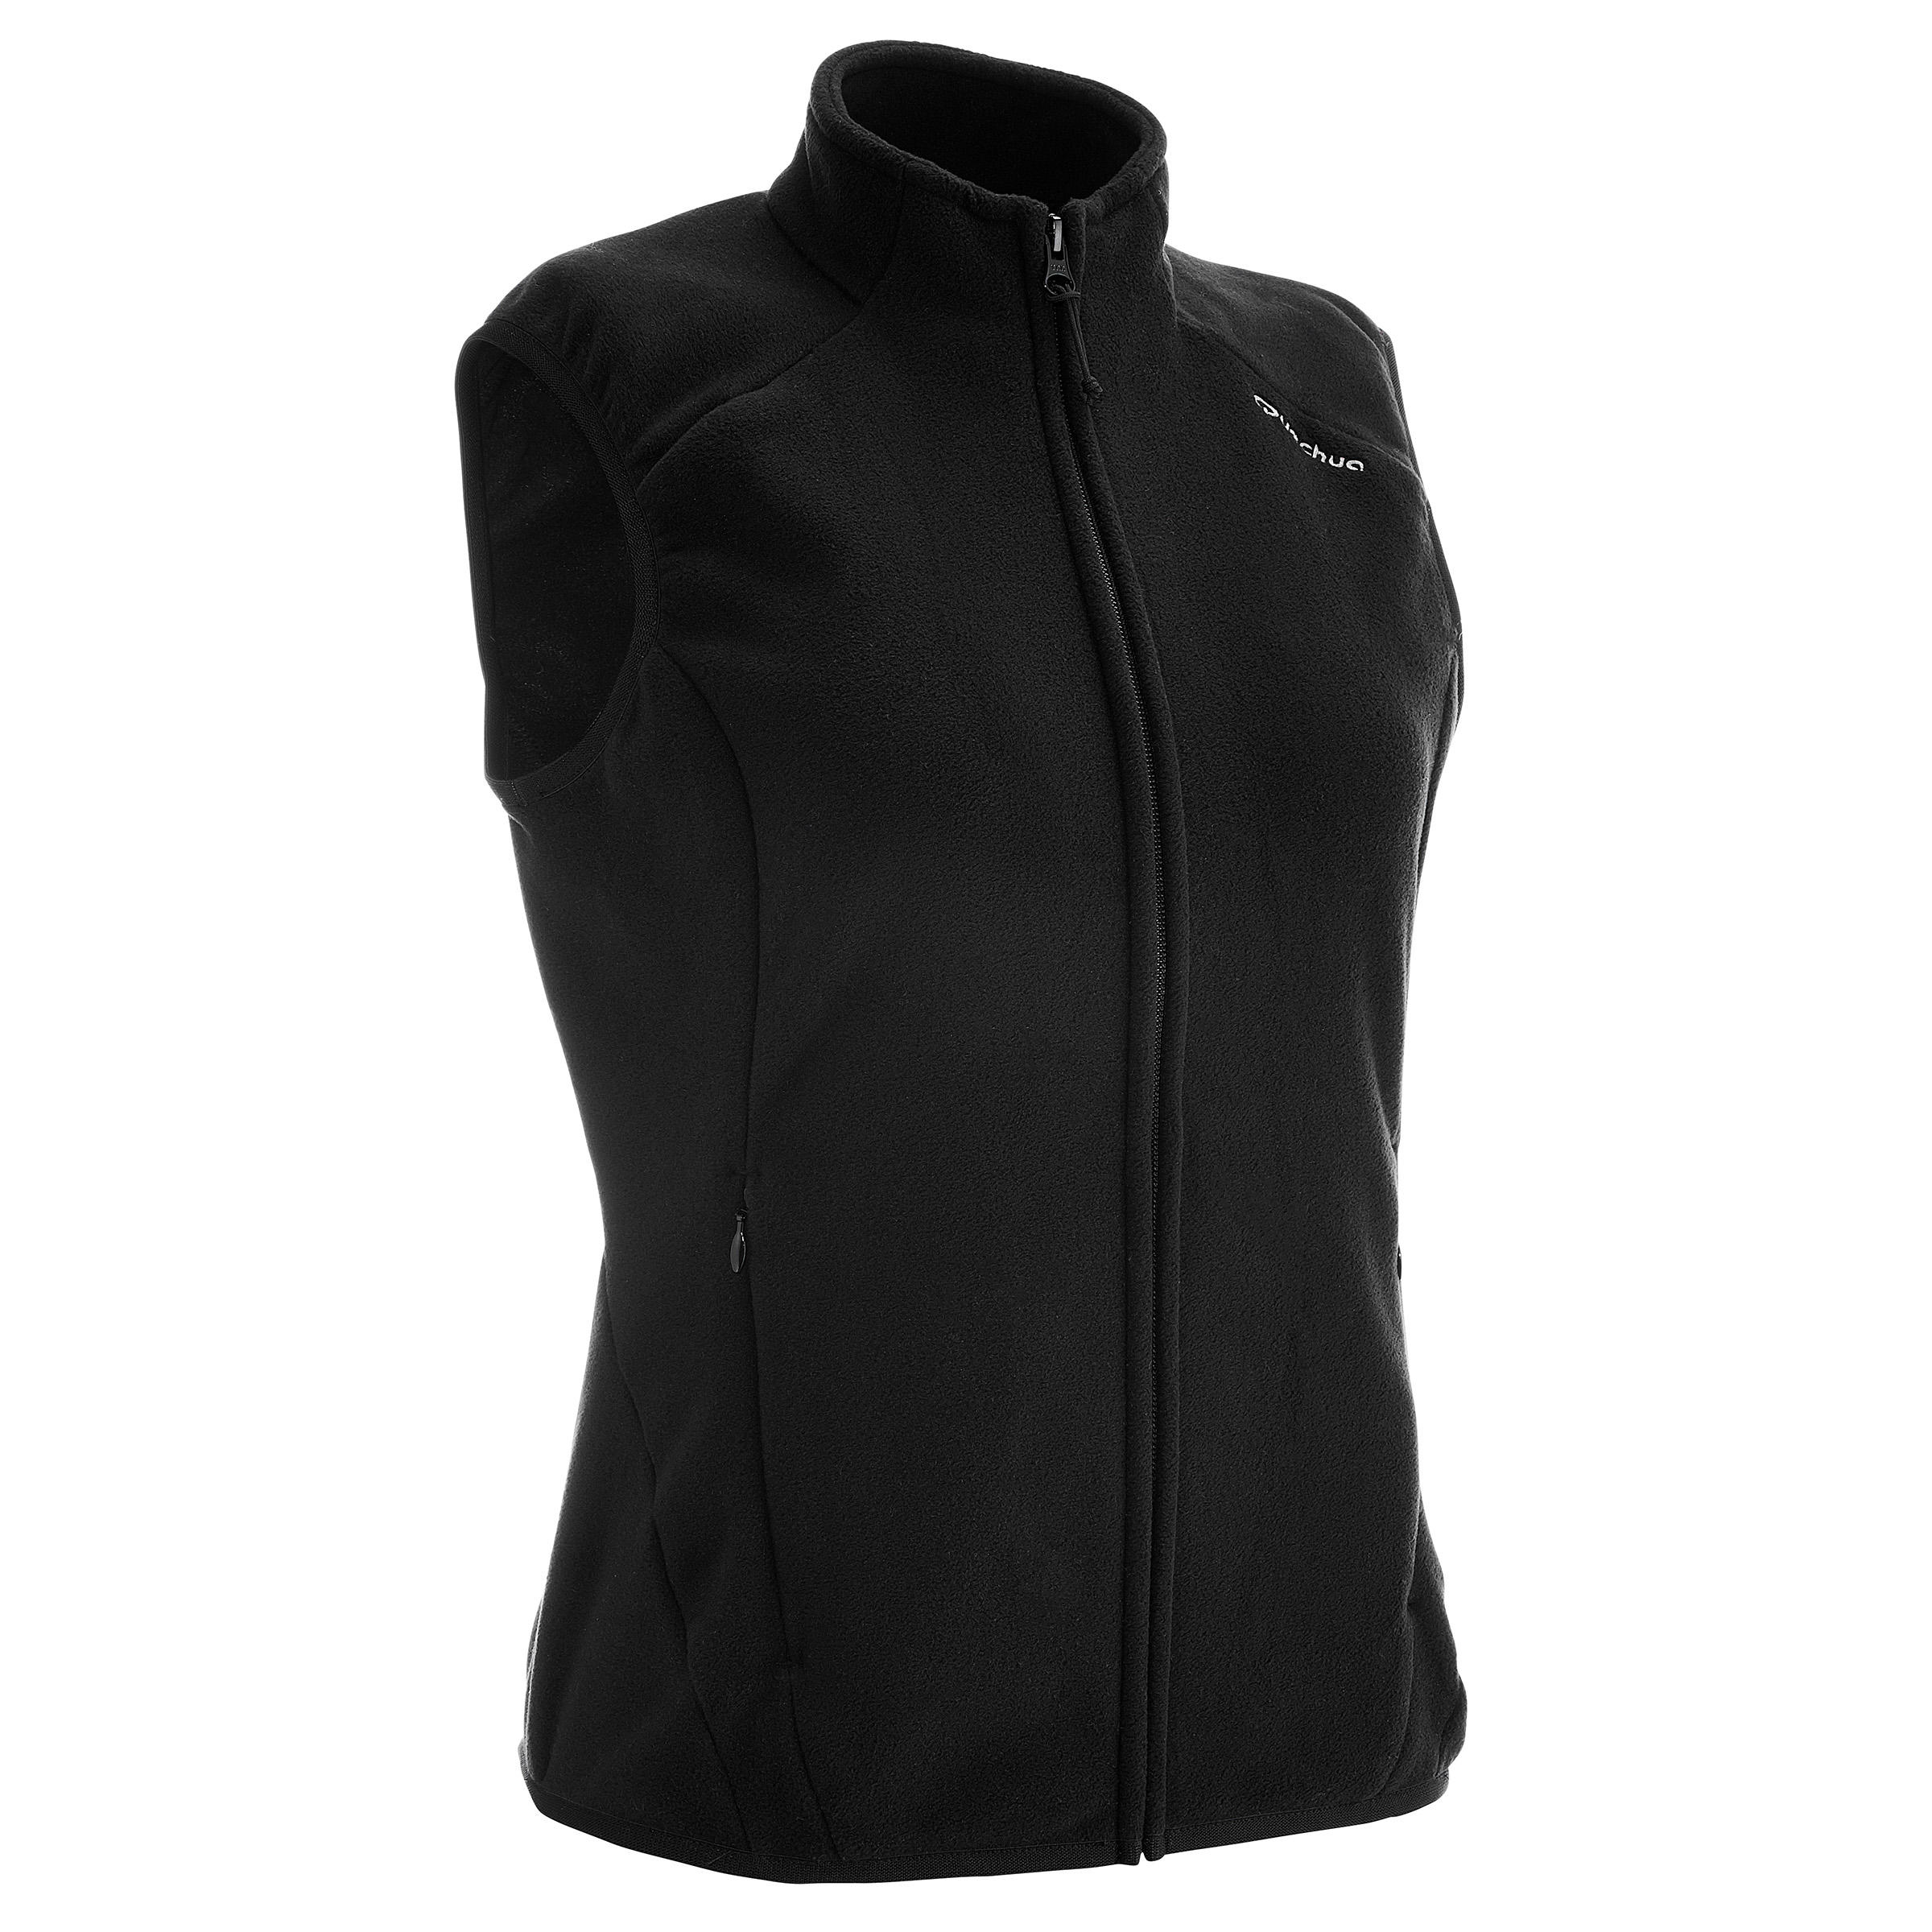 MH120 Women's Mountain Hiking Fleece Vest - Black